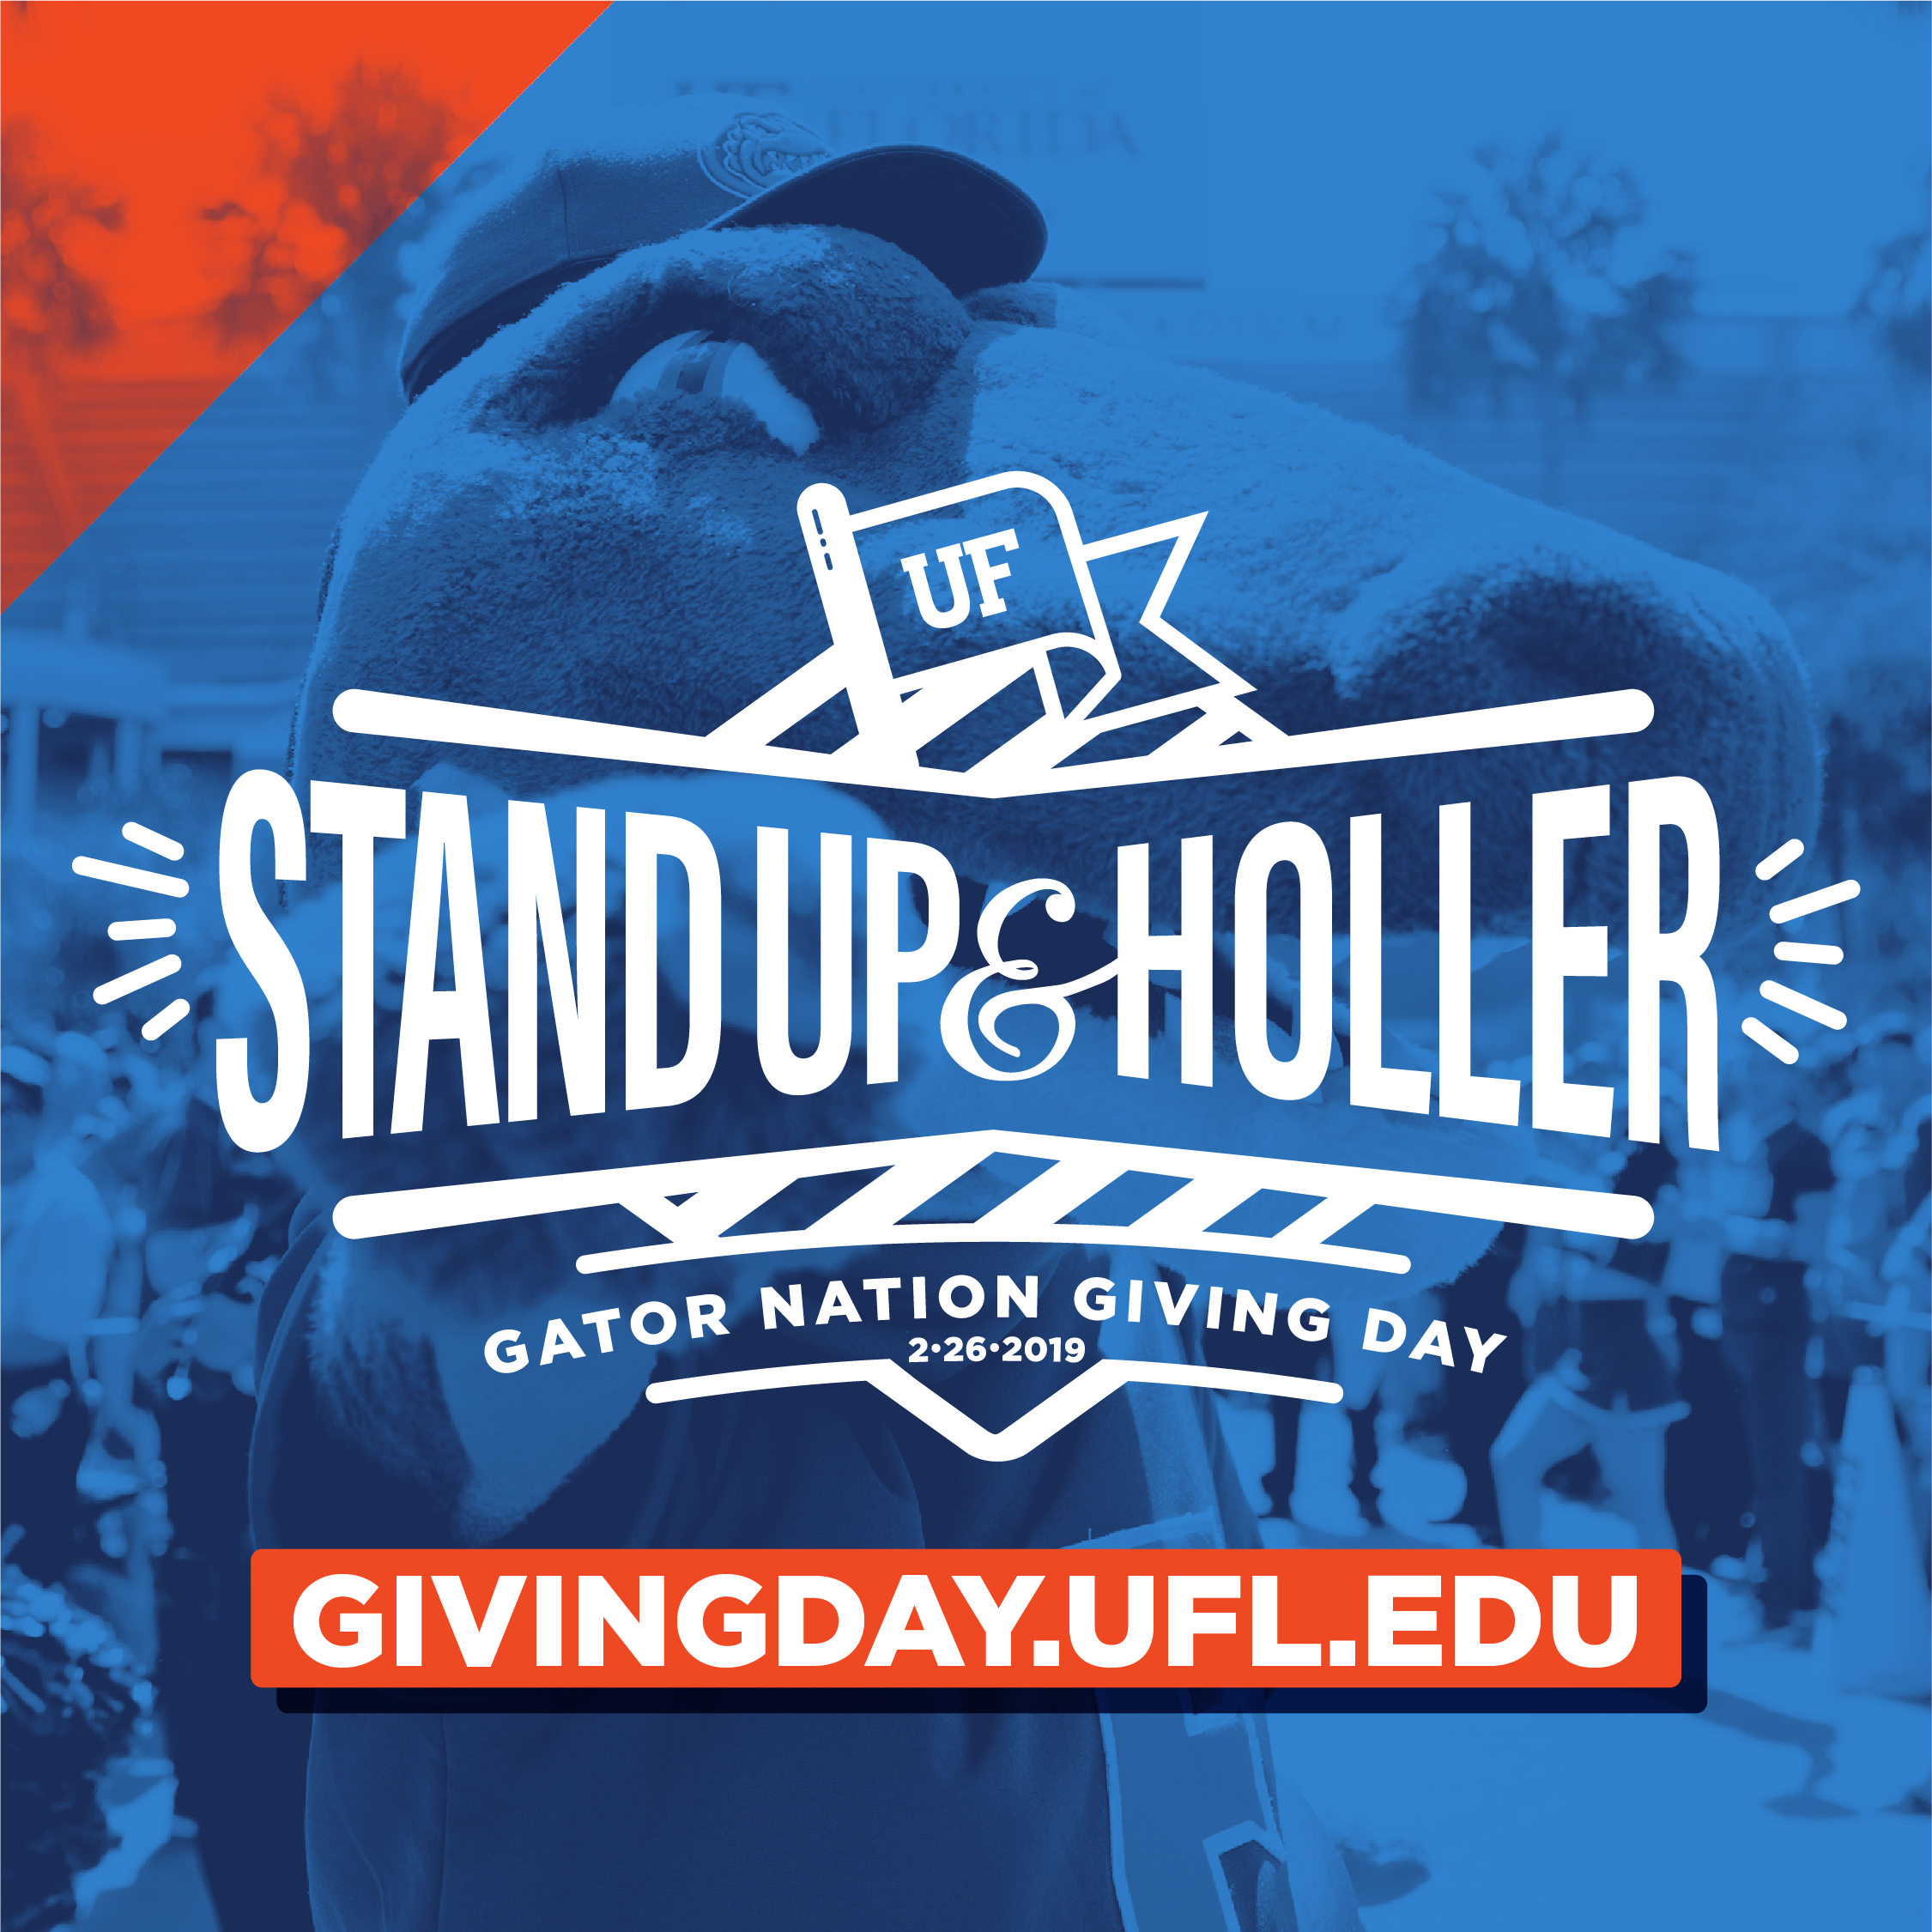 gator giving logo stand up and holler